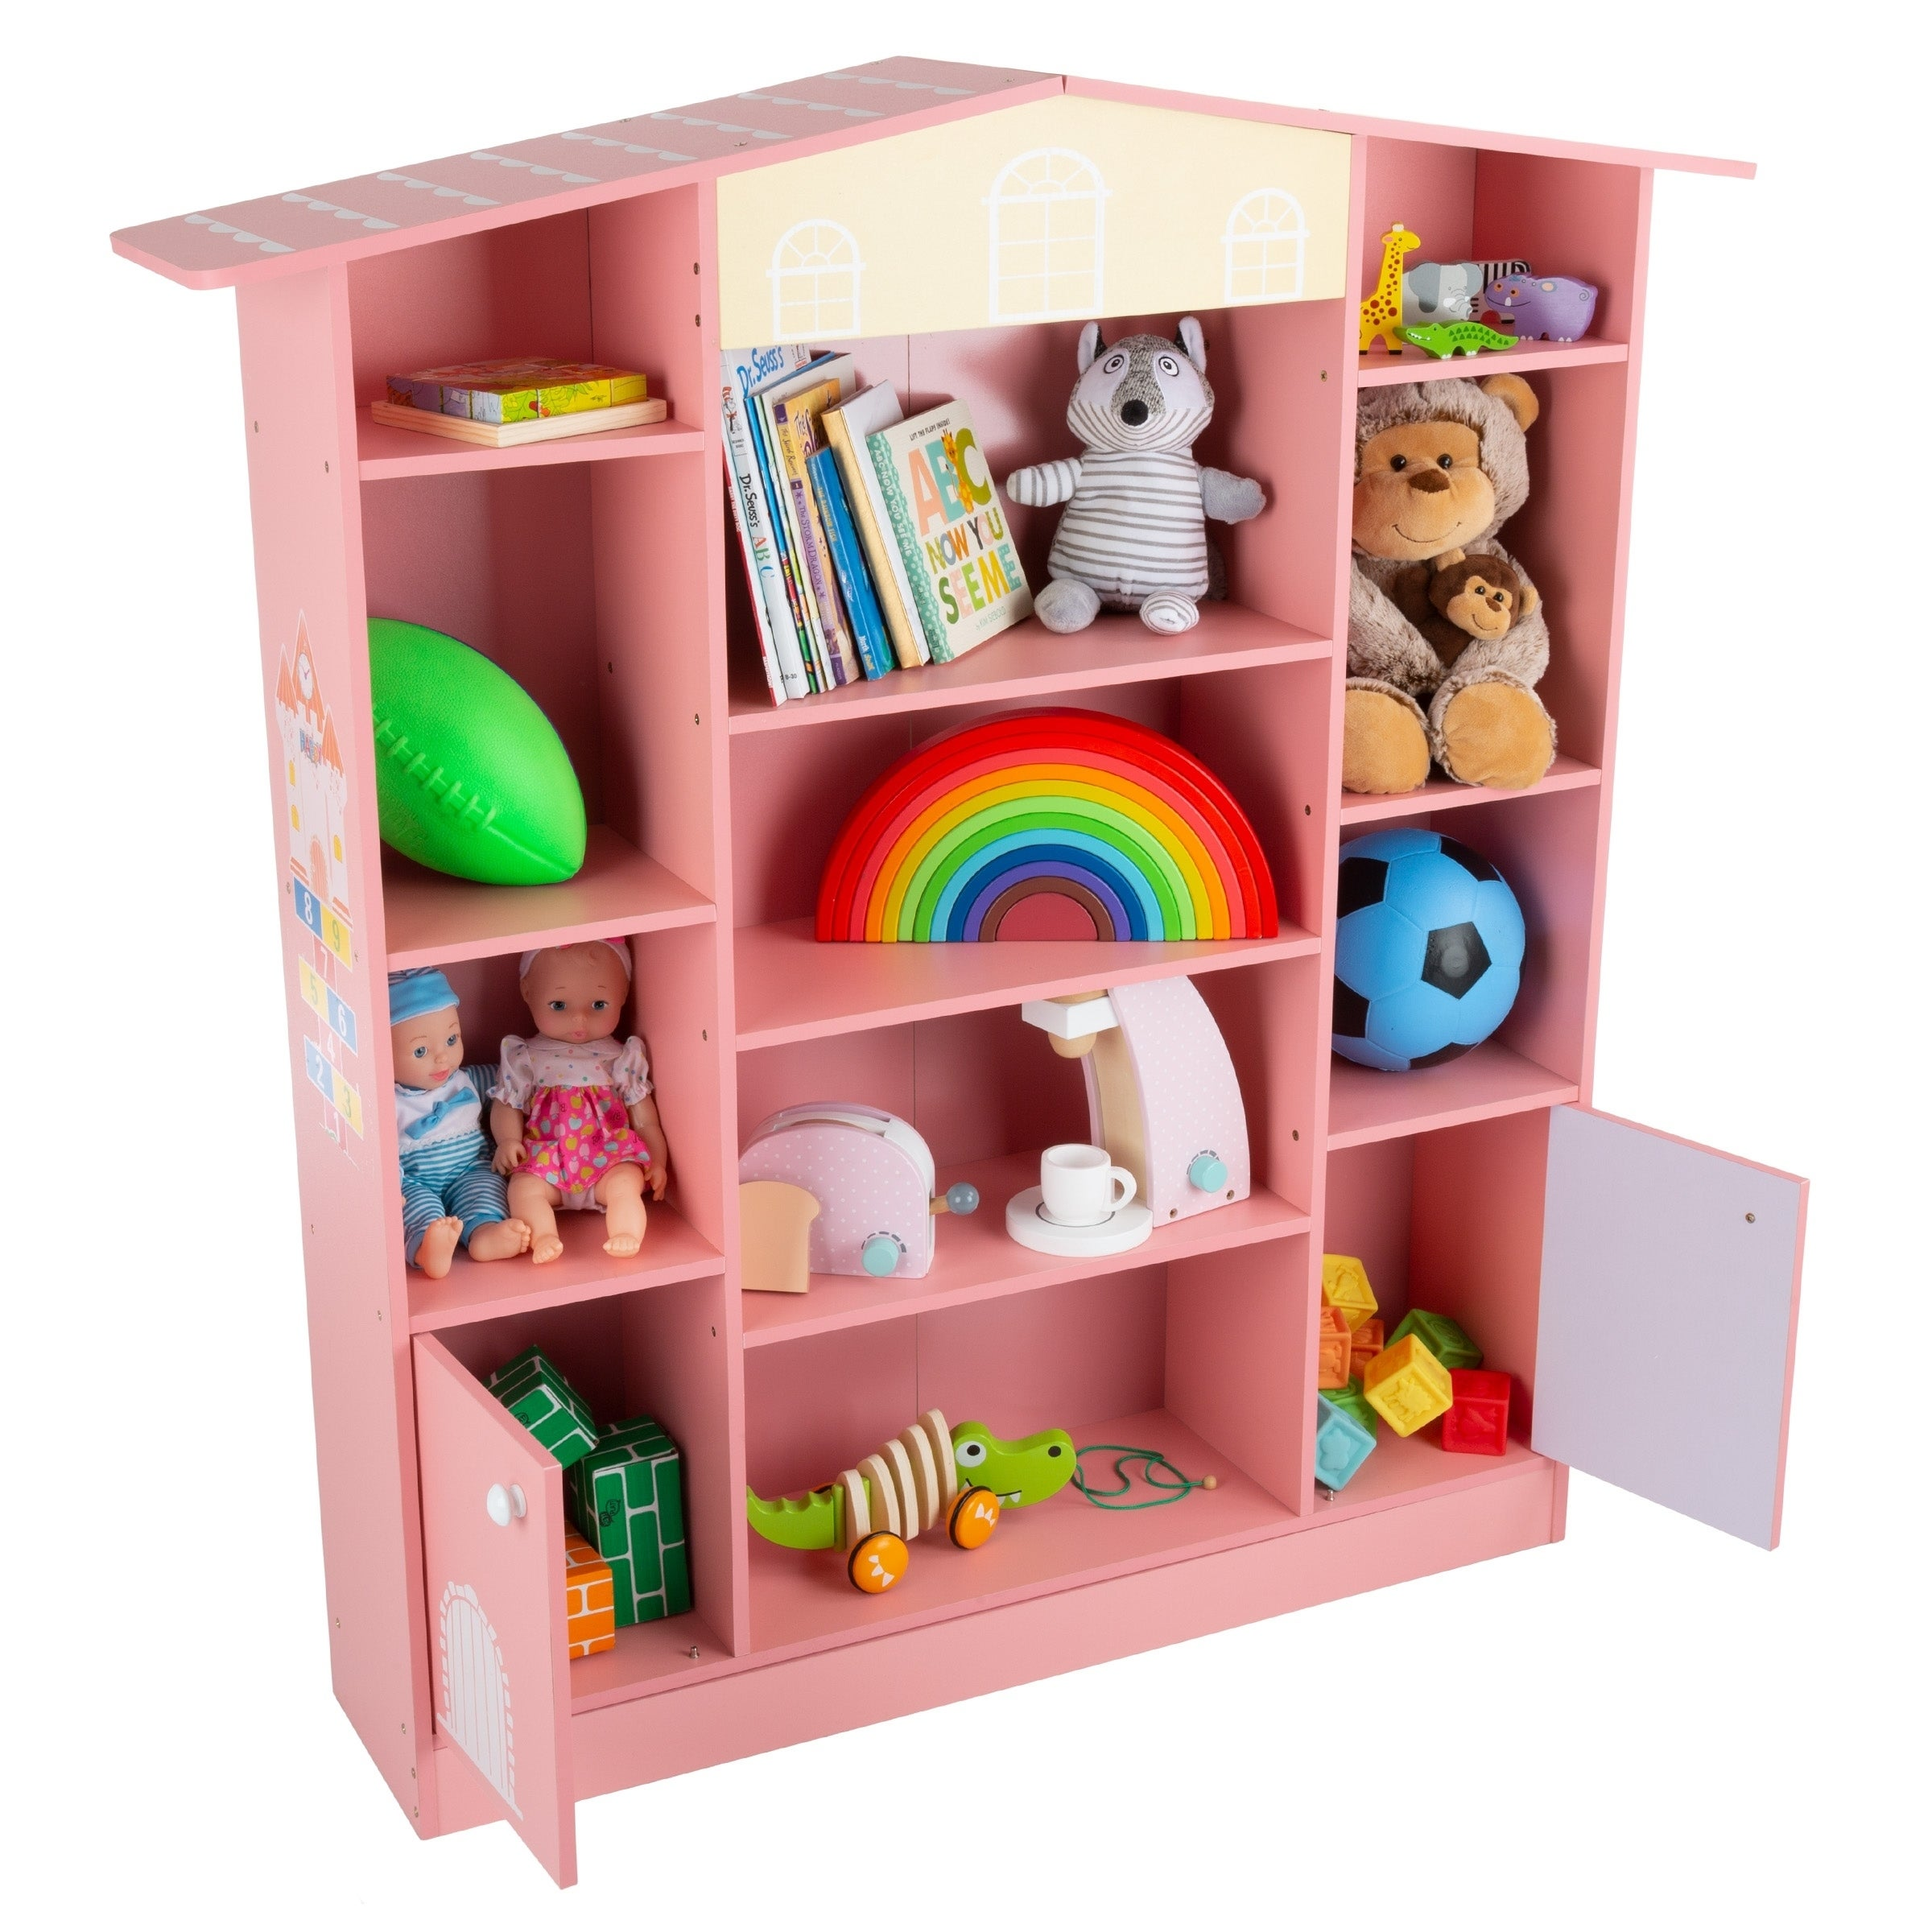 reputable site b1b9b ceea9 Dollhouse Shaped Bookcase- Cottage Design Furniture for Books or Toys-for  Children's Bedroom or Playroom by Hey! Play! (Pink)